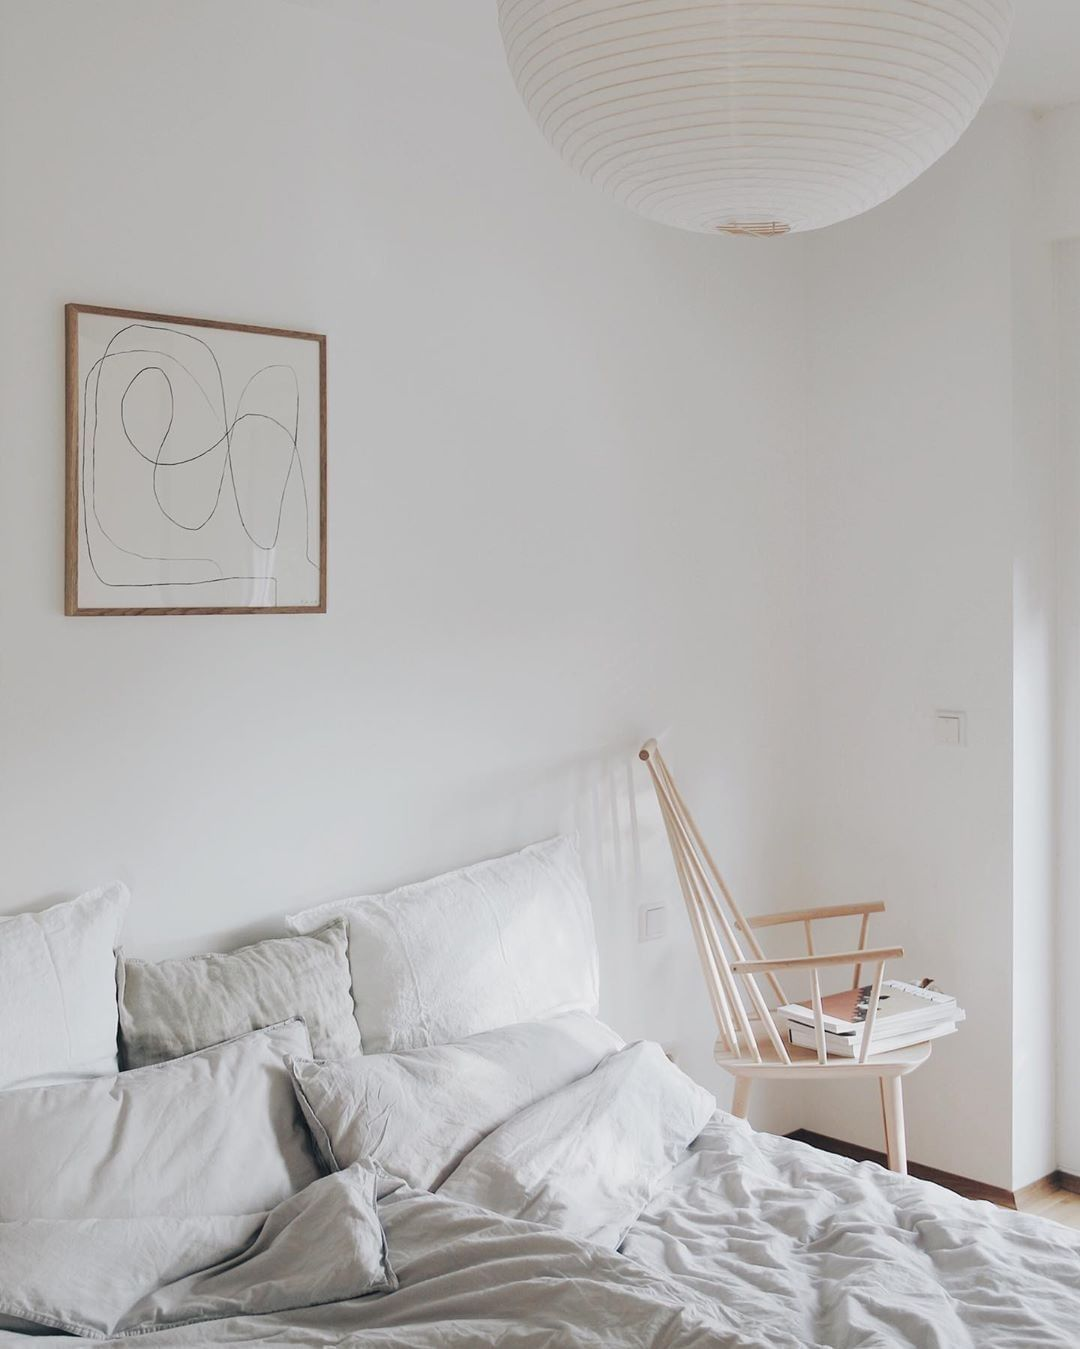 Home Decor Elegant Clean simplicity. Dreamy bedroom with Spring light. White Scandinavian bedroom with stunning abstract art print. #apartmenttherapy #dreamybedroom #bedroominspo #linedrawing #art #poster #lineart Featuring a classic Bycdesign studio print. Captured by @mysoulmateplace..#art #artprint #tpc #theposterclub #interiordesign #nordicdecor #homestyling #bedroomdecor.Home Decor Elegant  Clean simplicity. Dreamy bedroom with Spring light. White Scandinavian bedroom with stunning abstract